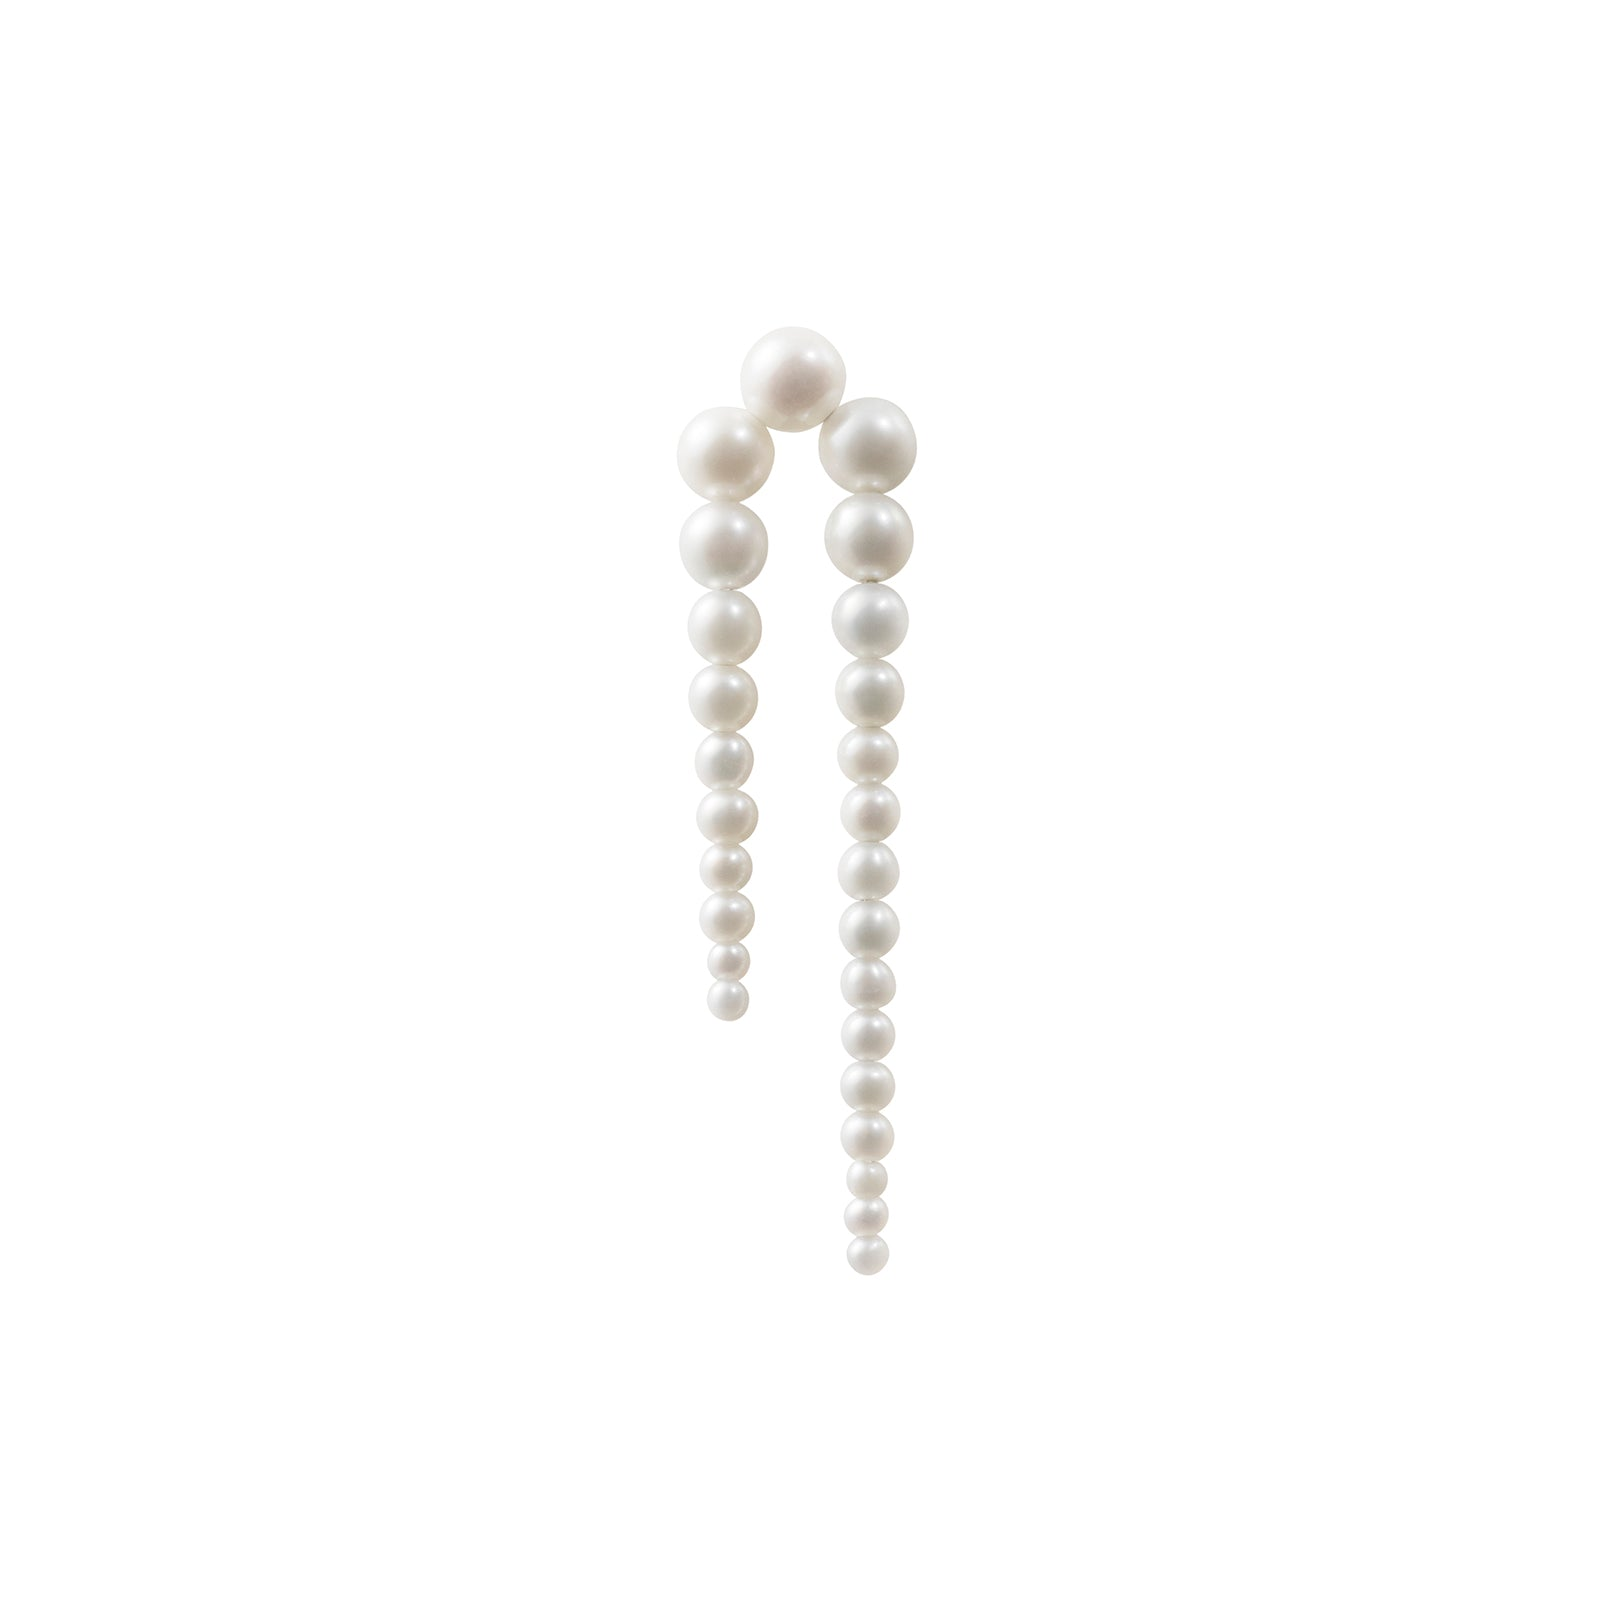 Sophie Bille Brahe Perle Nuit Earring - Right - Earrings - Broken English Jewelry